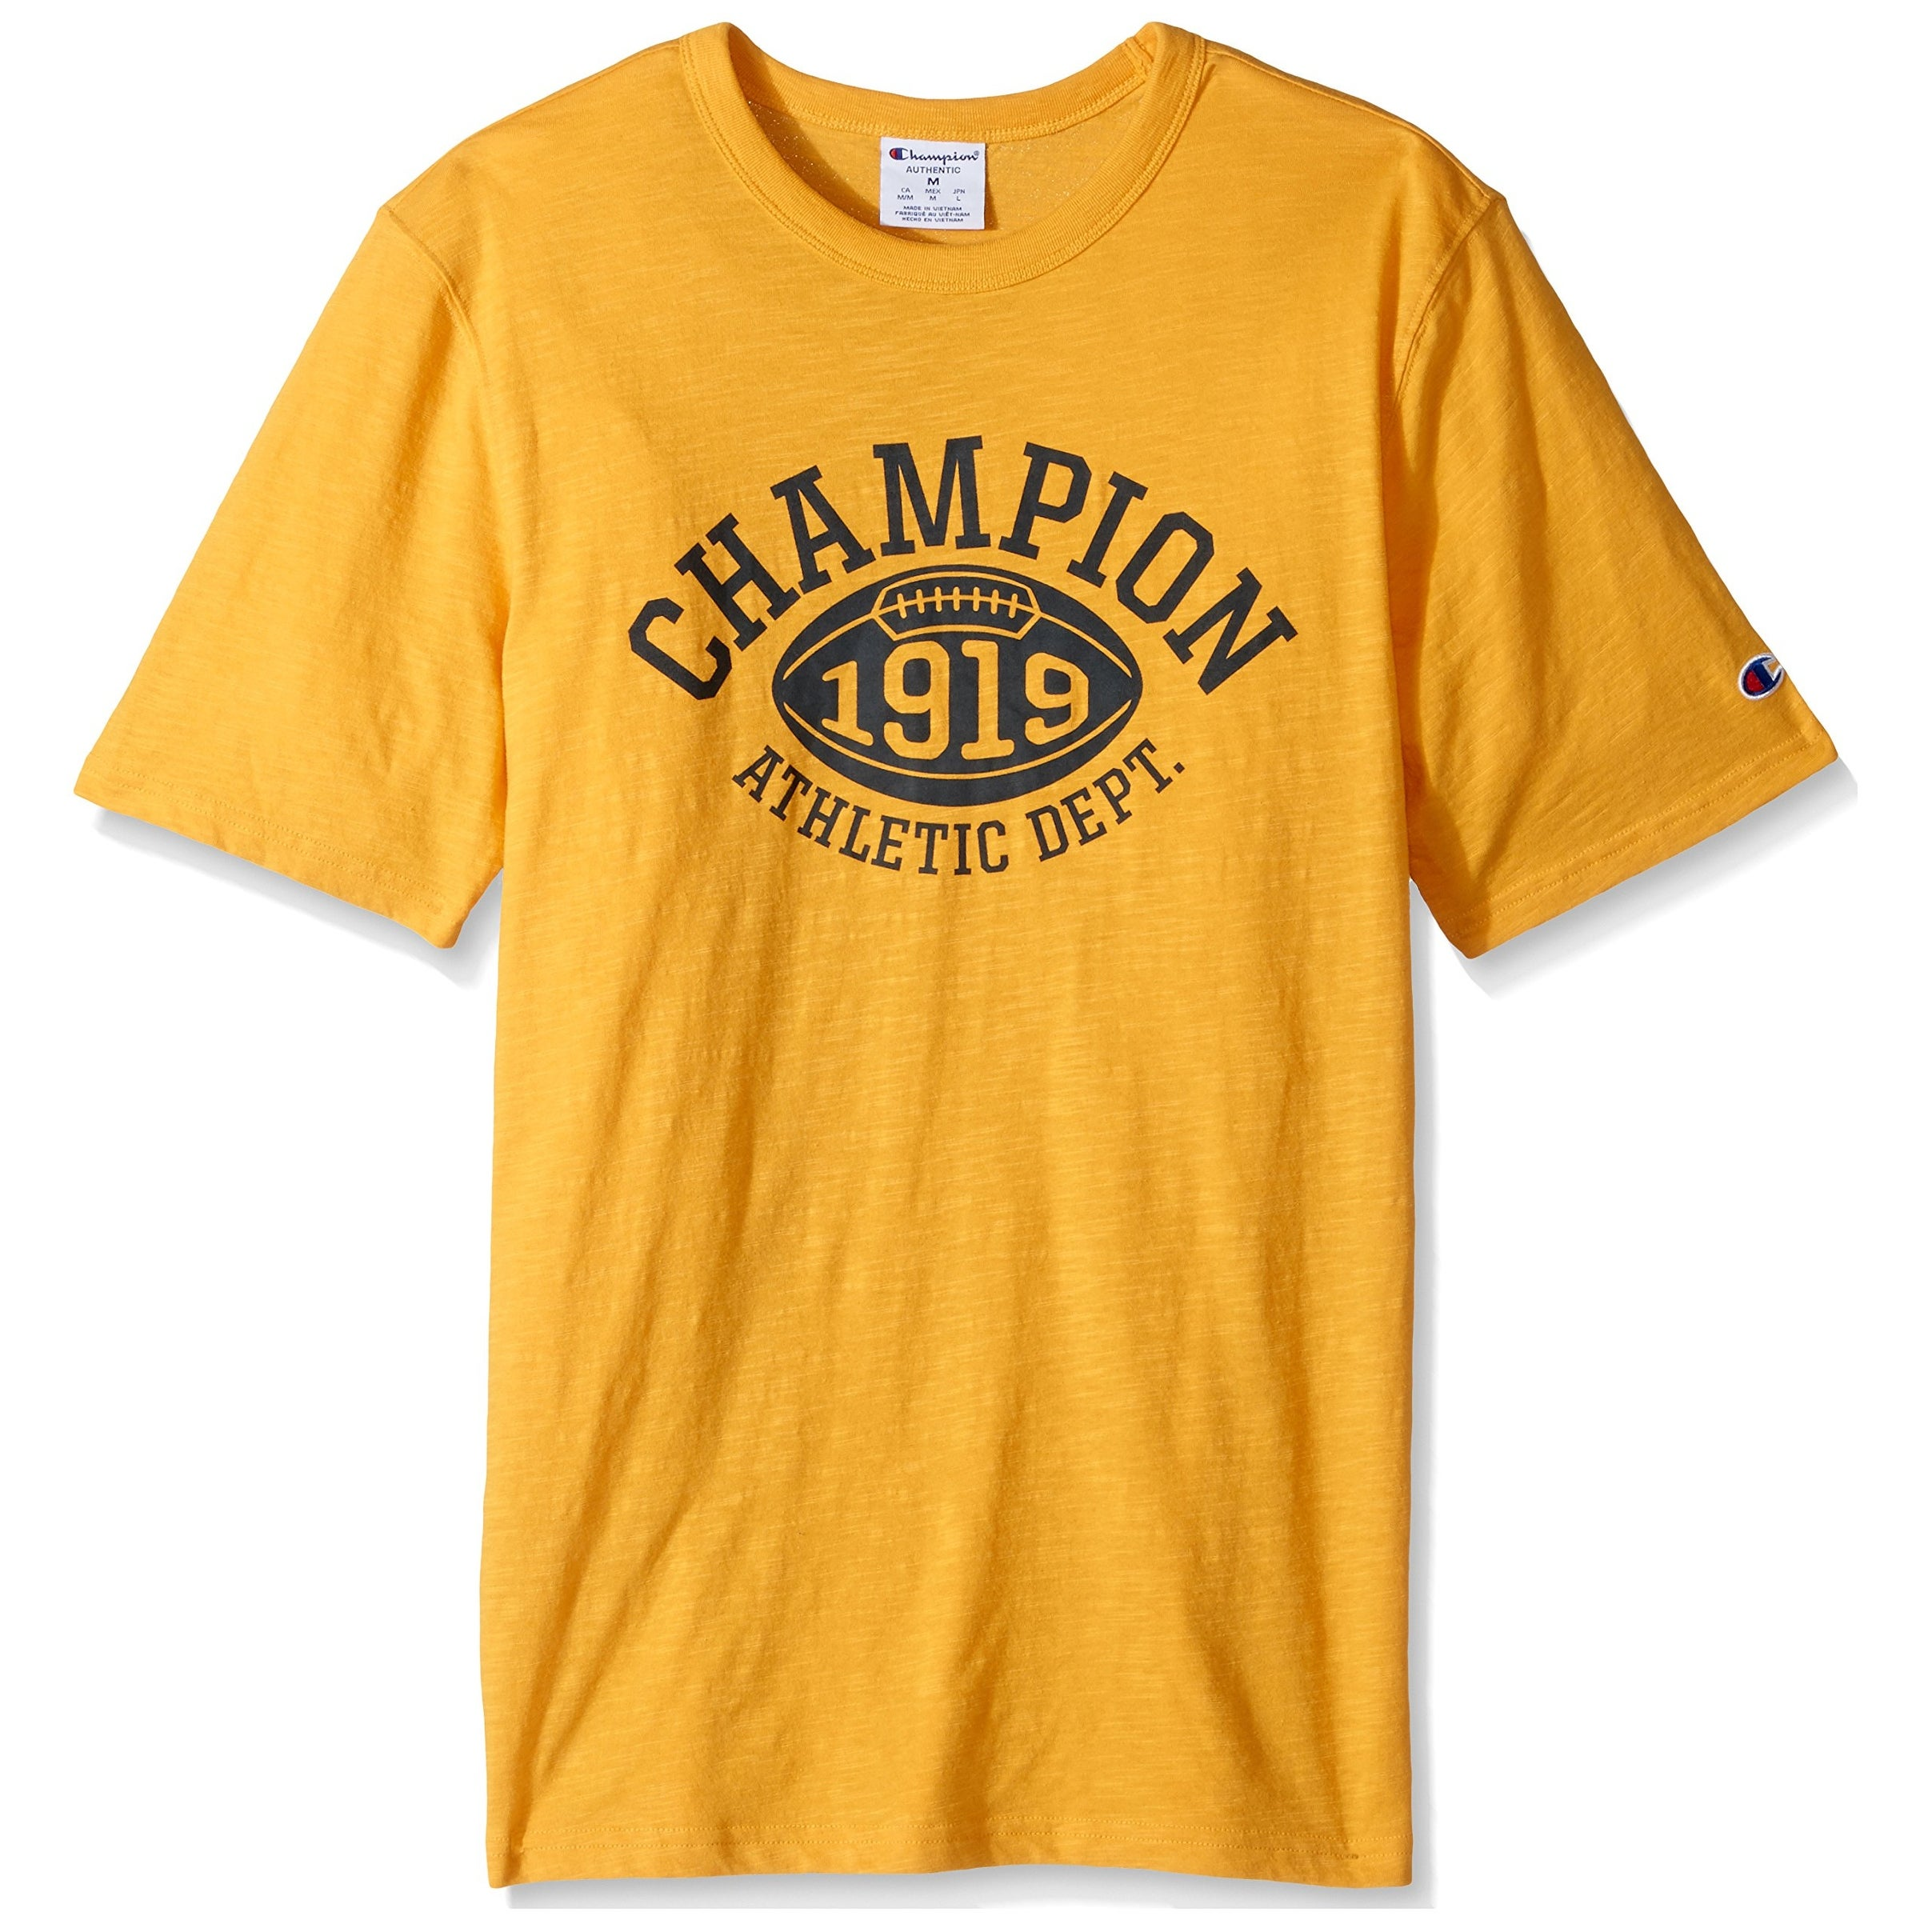 53d5dcfa Shop Champion Mens Short-Sleeve Athletic Crewneck T-Shirt $25 - On Sale -  Free Shipping On Orders Over $45 - Overstock - 26986180